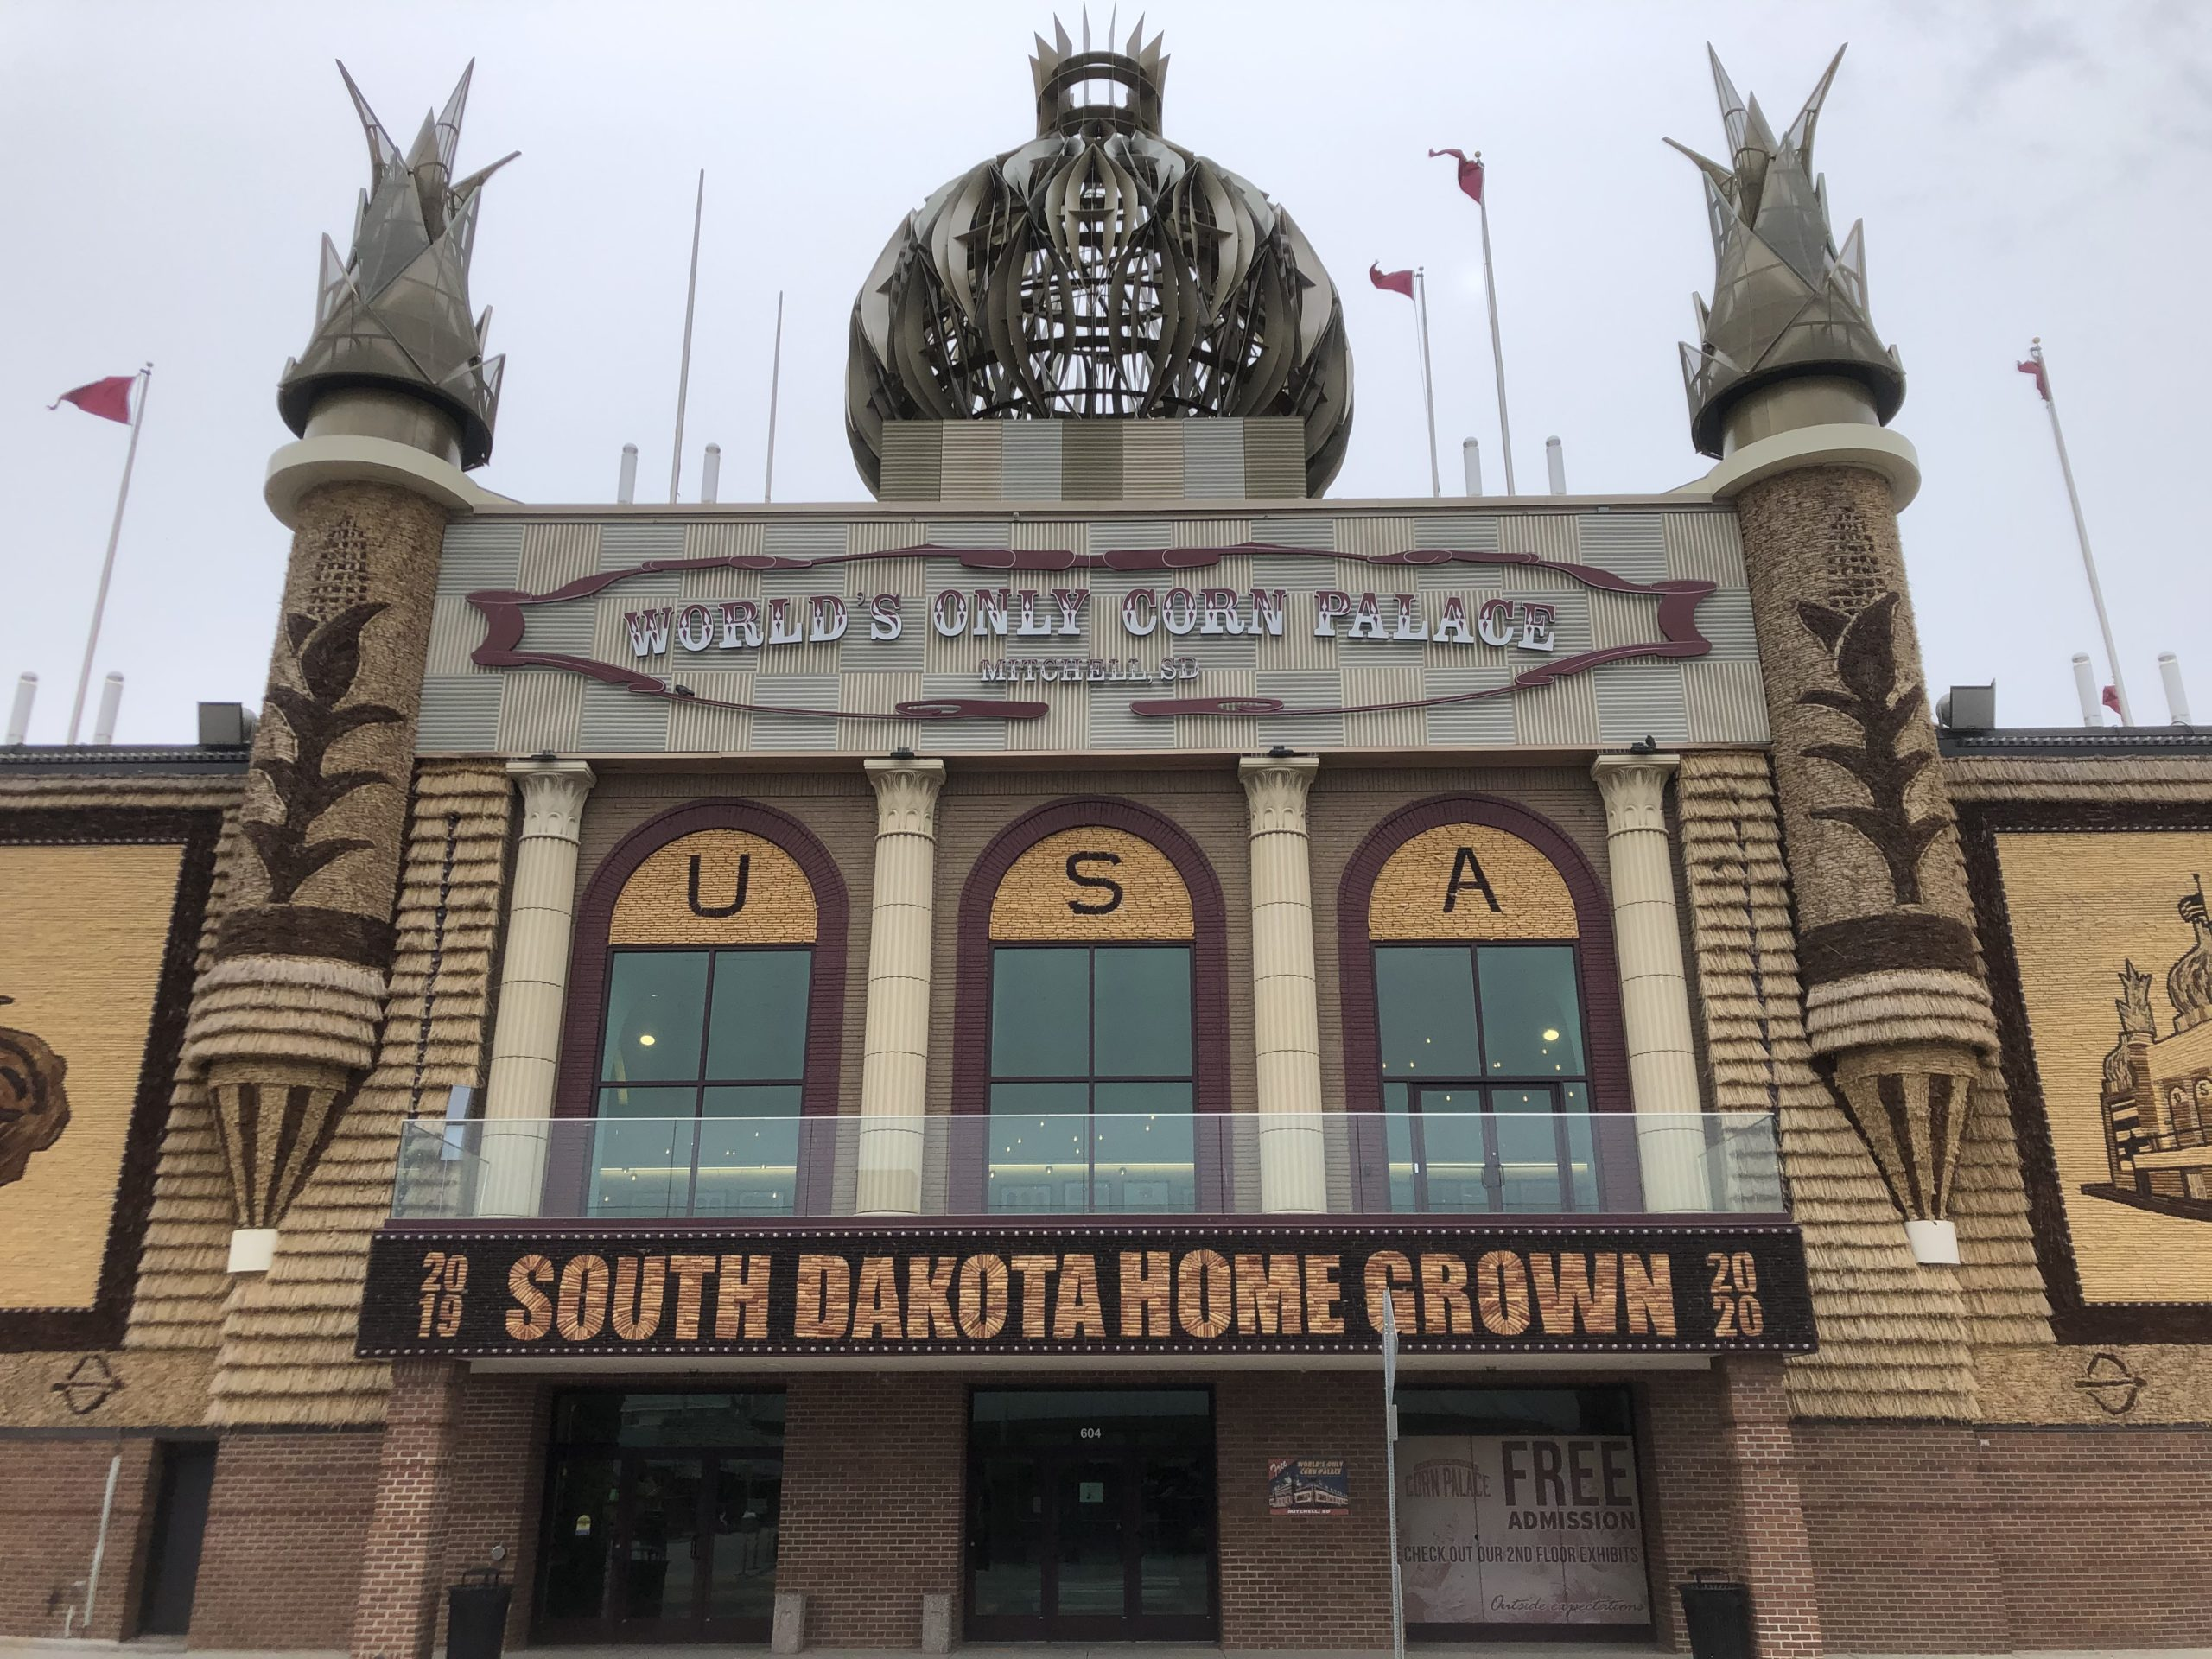 The outside of the Corn Palace in Mitchell, South Dakota